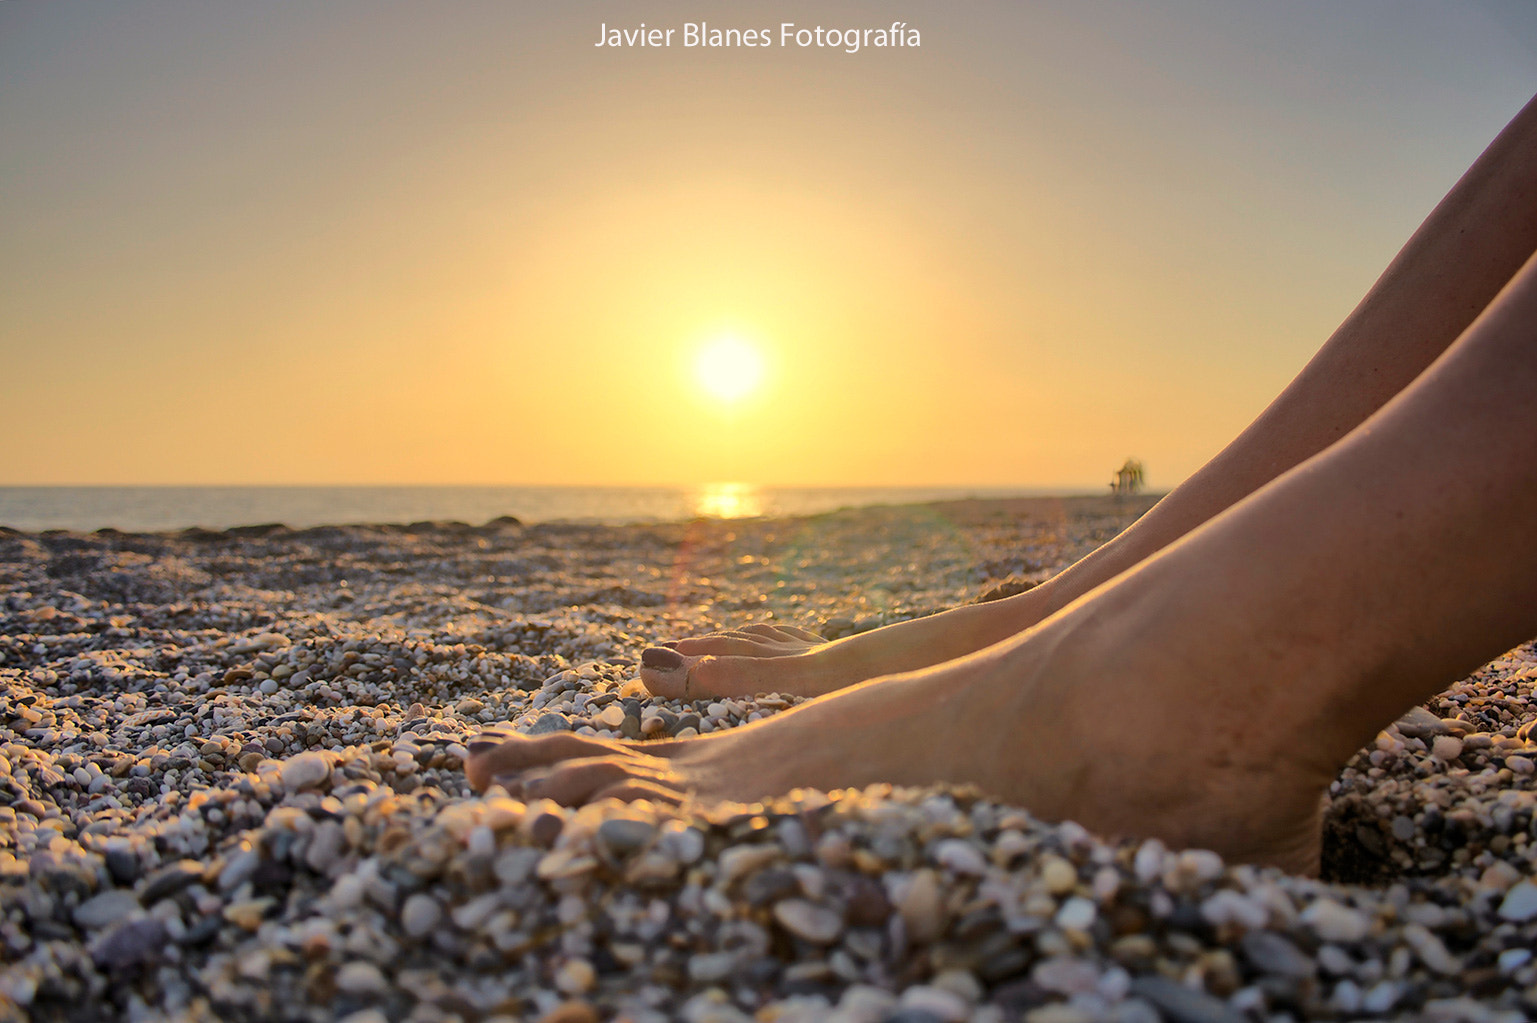 Photograph Relax by Javier Blanes on 500px